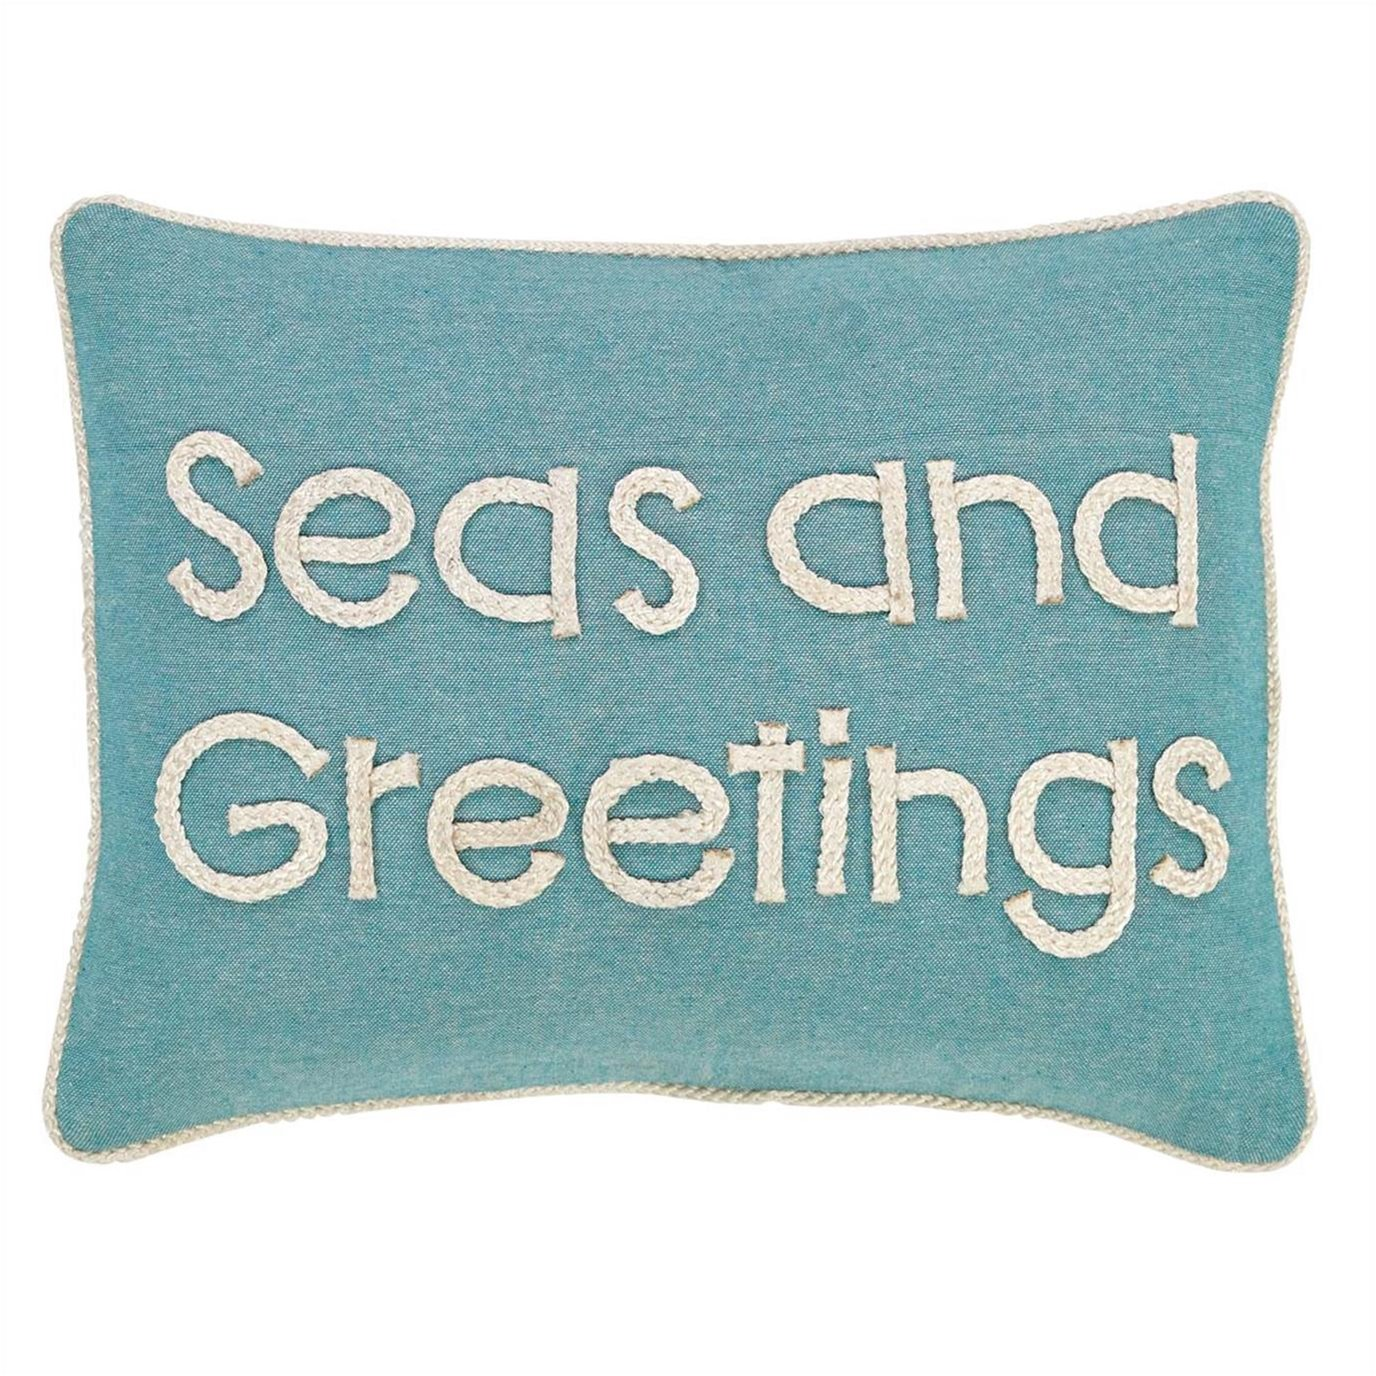 Sanbourne Seas and Greetings Pillow 14x18